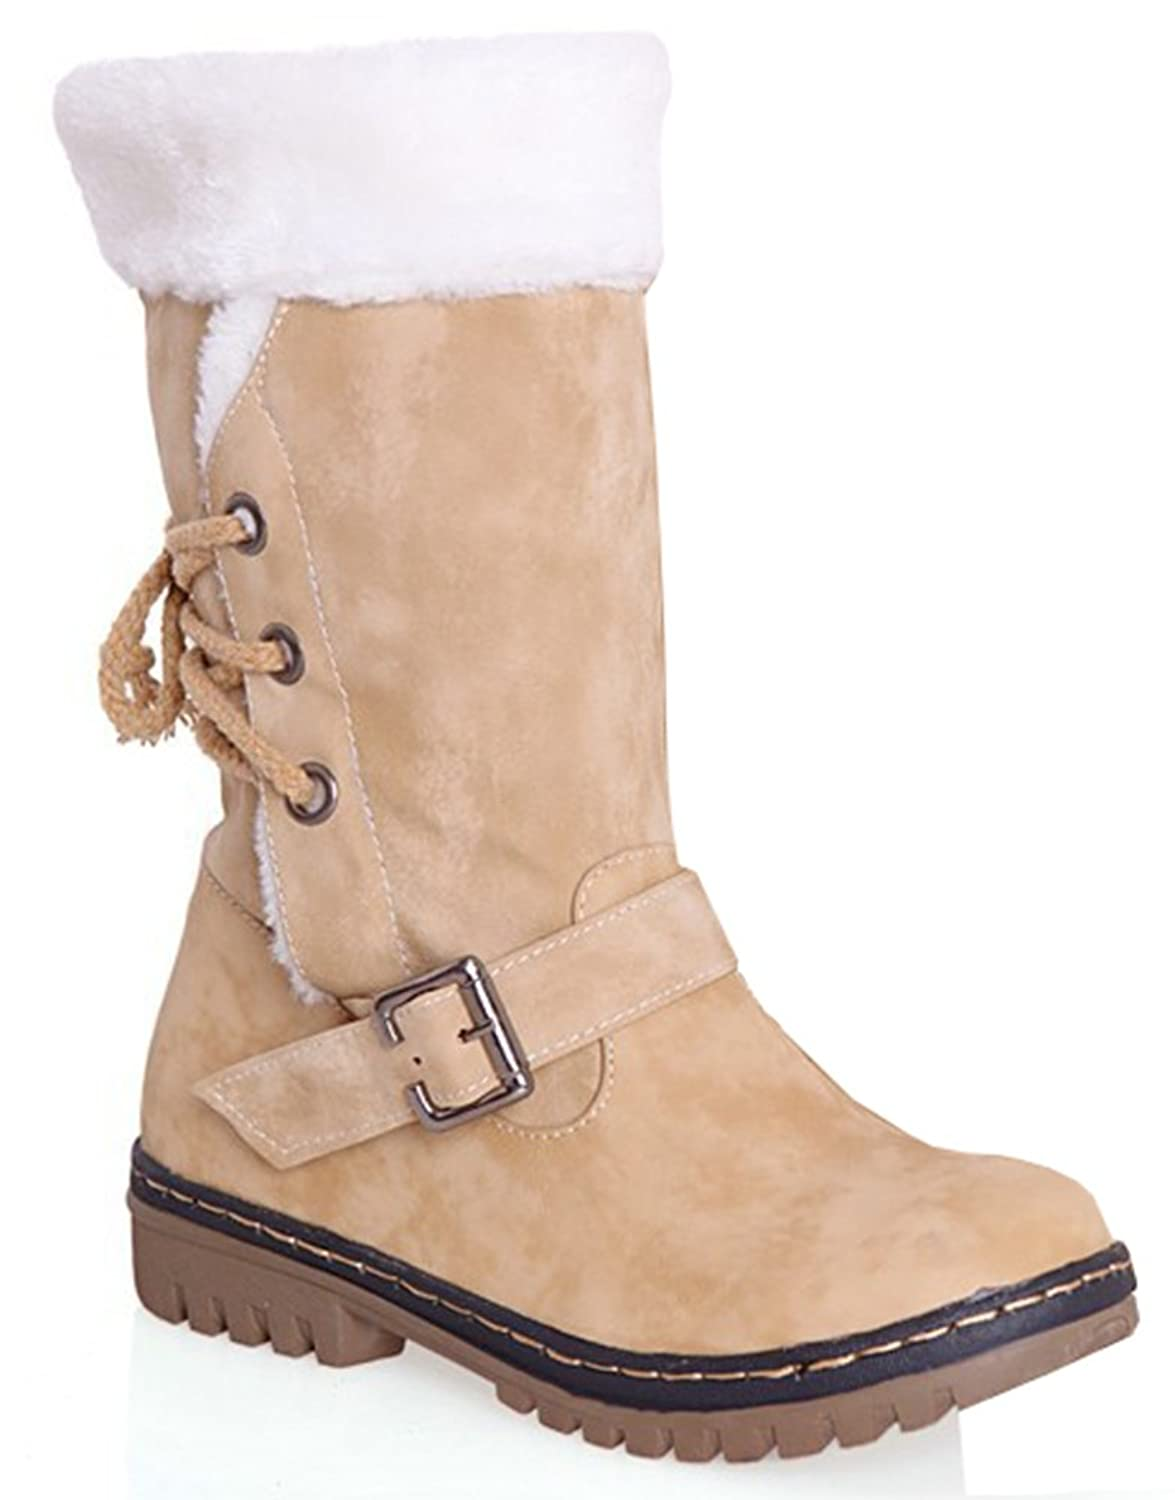 Women's Warm Buckled Lace Up Faux Fur Lined Chunky Heels Mid Calf Snow Boots